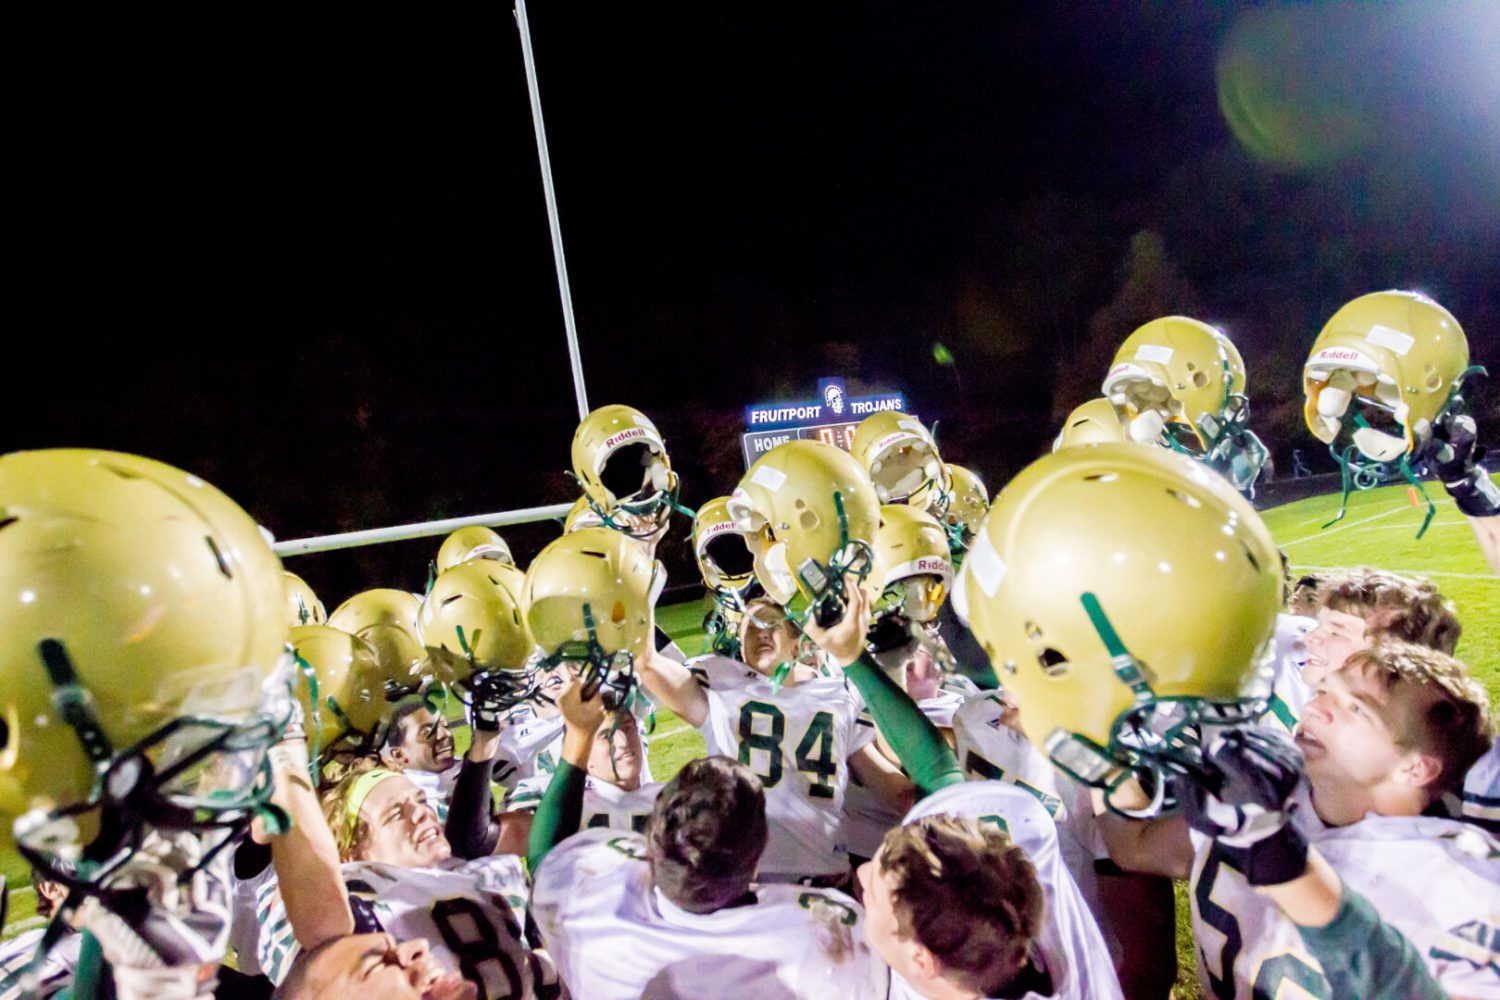 Muskegon Catholic drubs Fruitport, earns automatic playoff berth under first-year coach